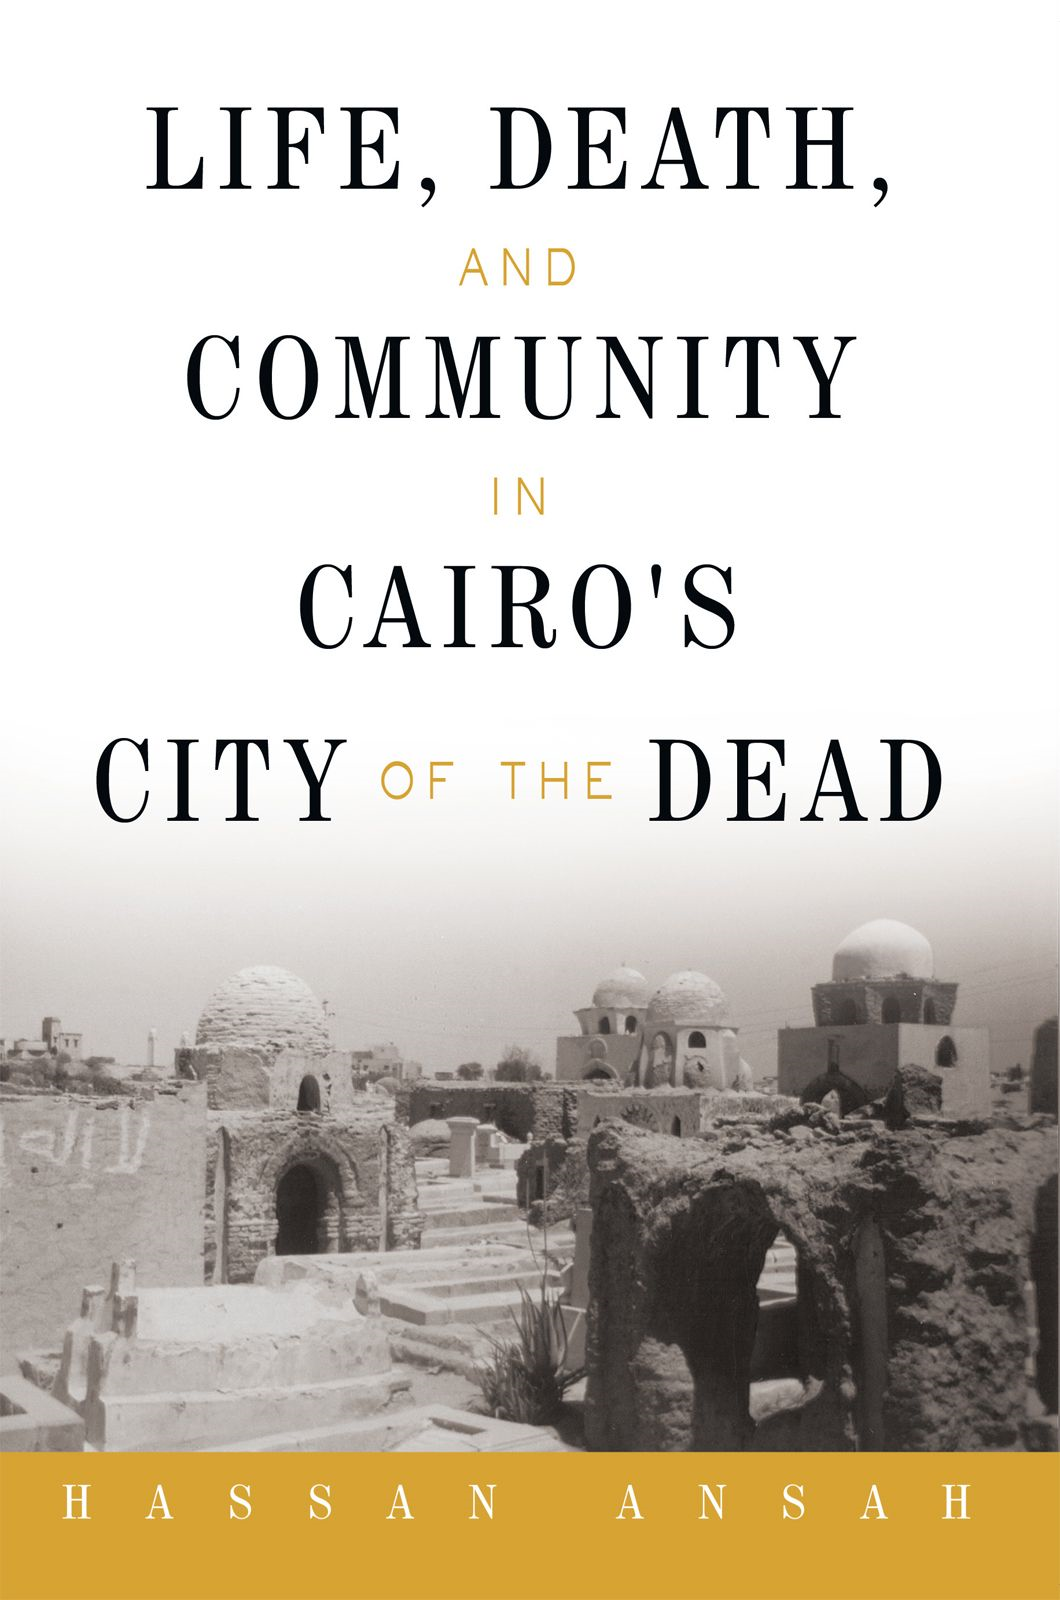 Life Death And Community In Cairo's City Of The Dead By: Hassan Ansah